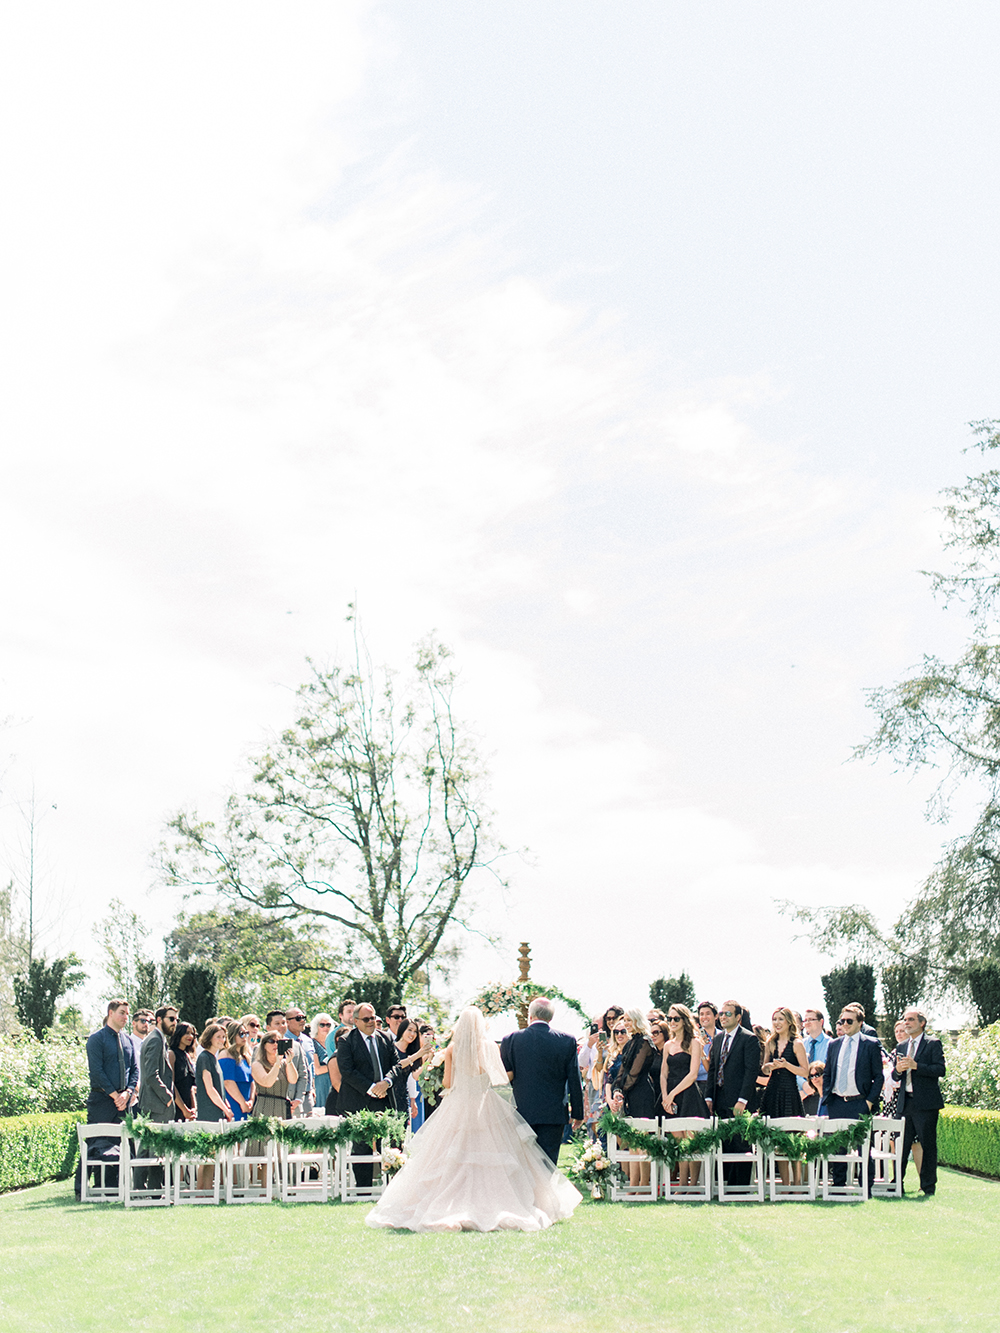 Romantic and Classic Greystone Mansion Wedding by Lucky Day Events Co. x Jordan Galindo Photography // Processional